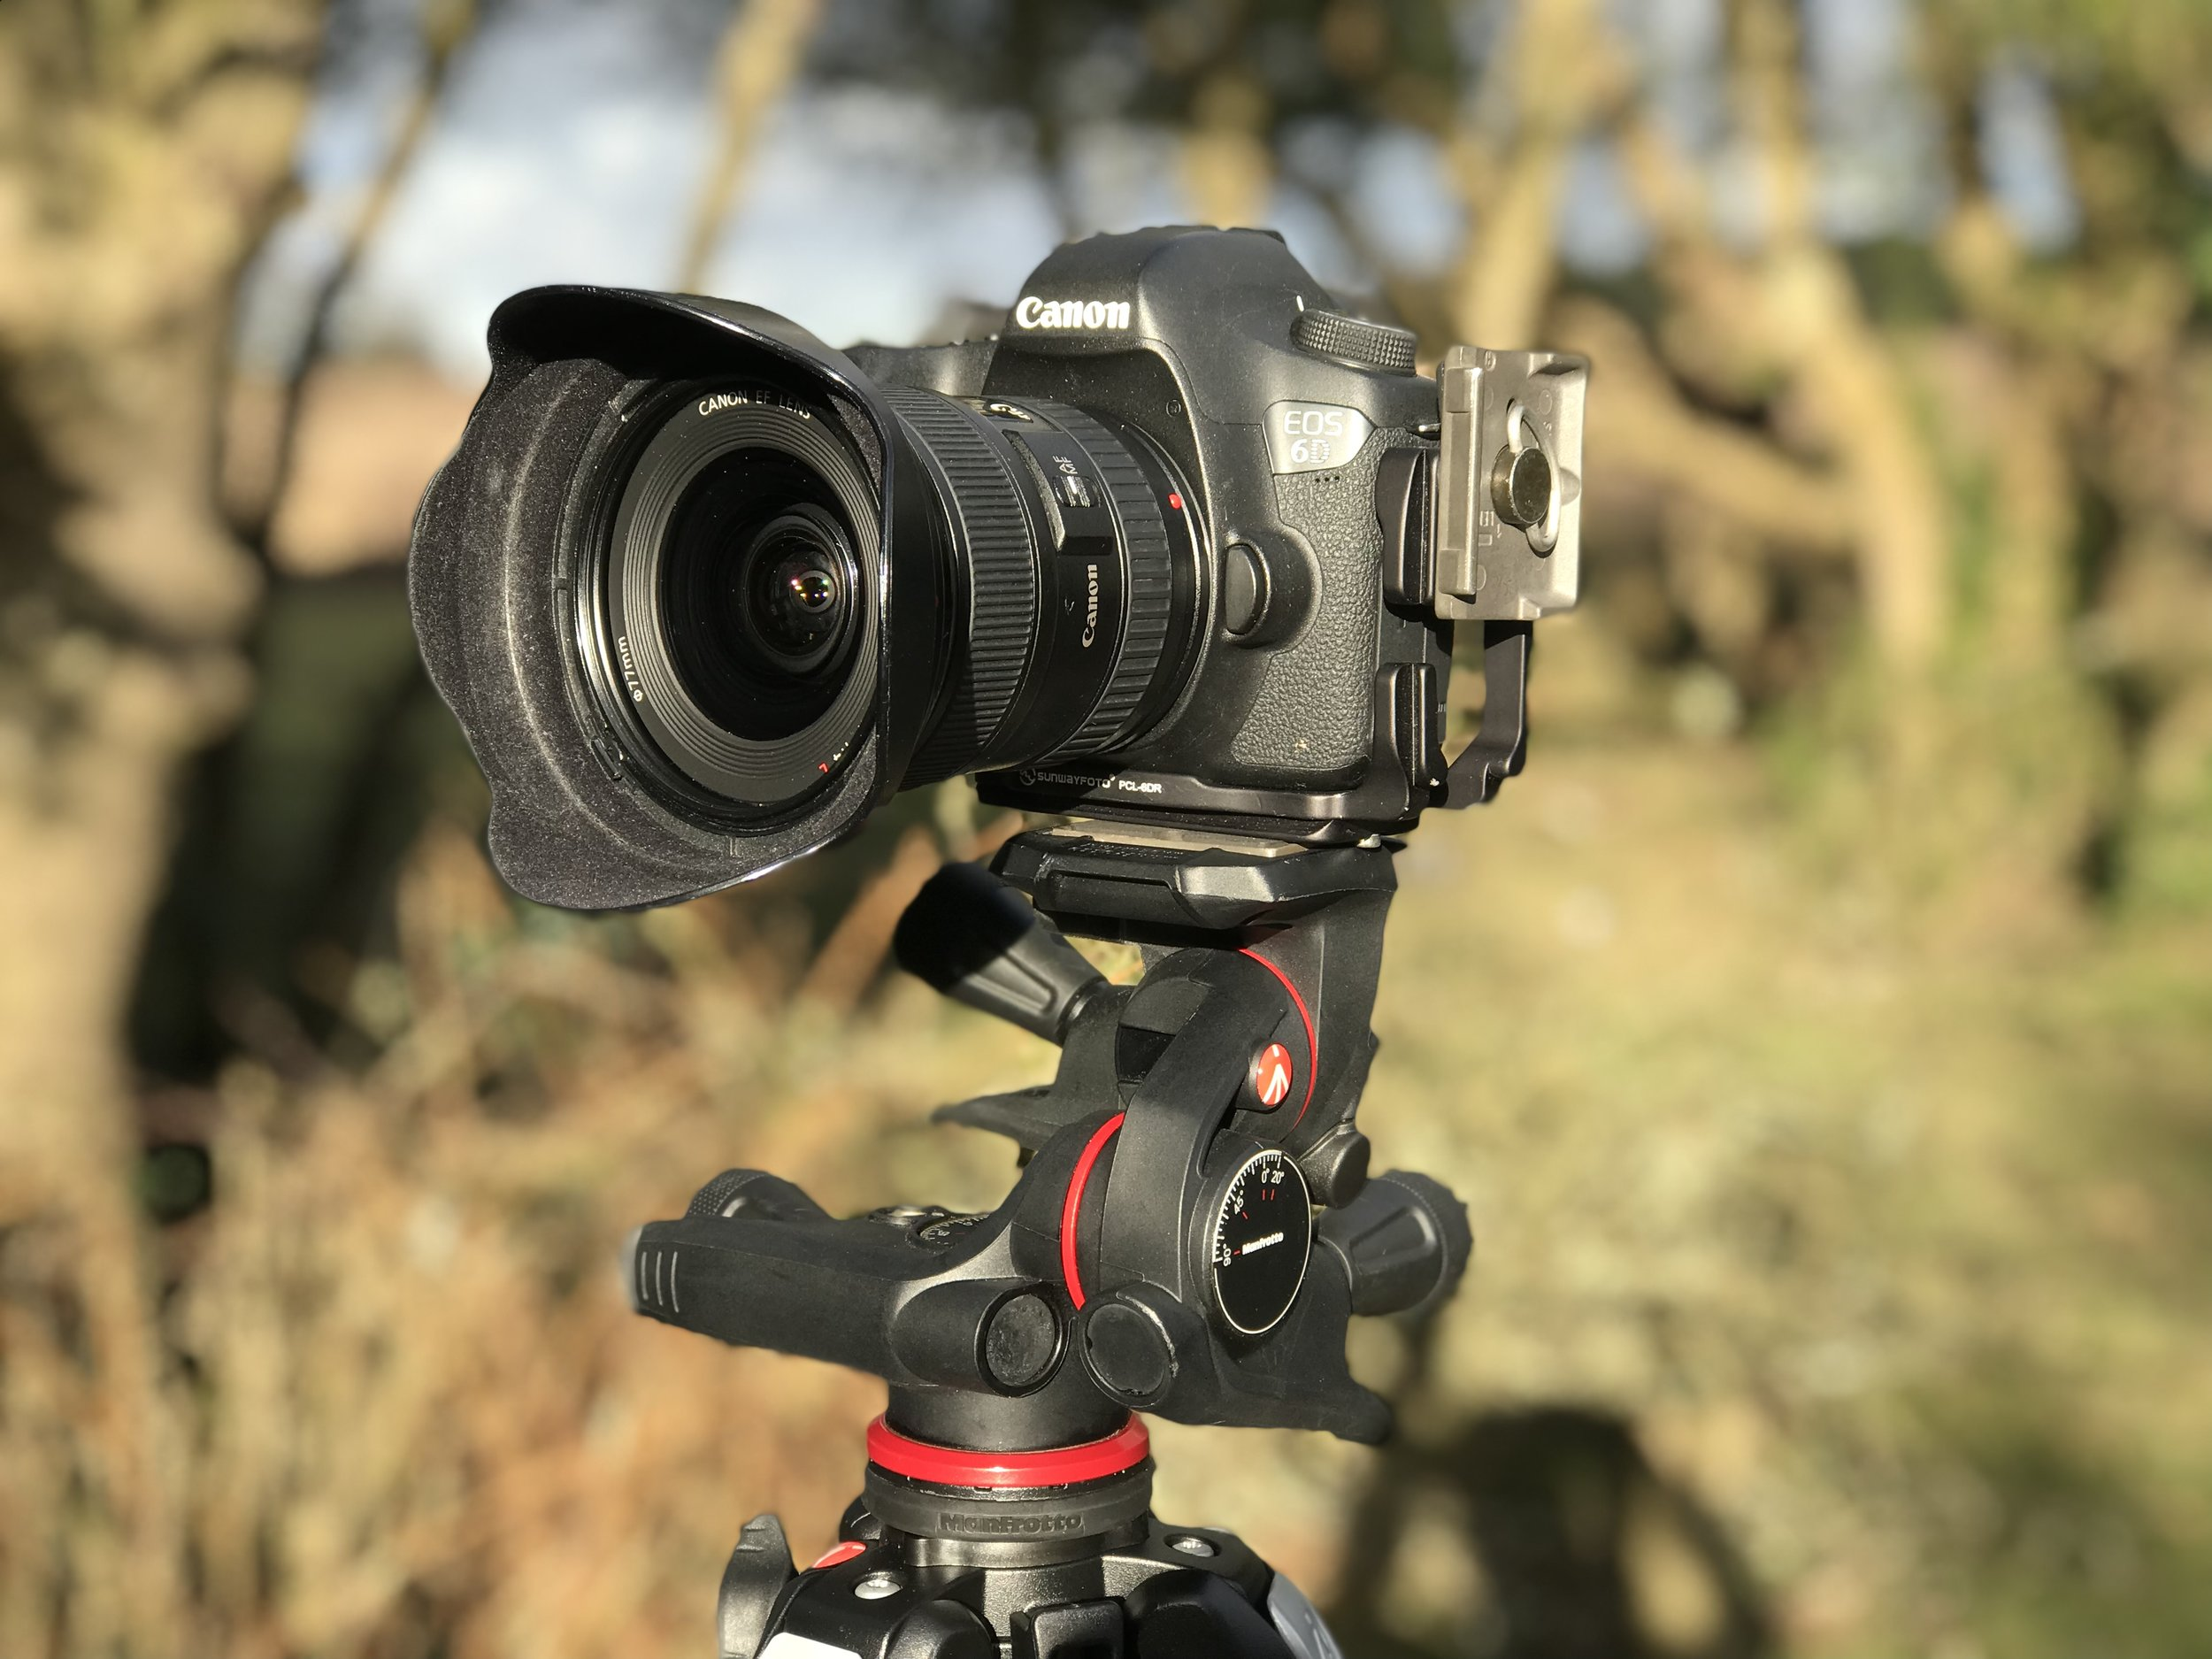 Canon 6D and Canon 17-40mm lens